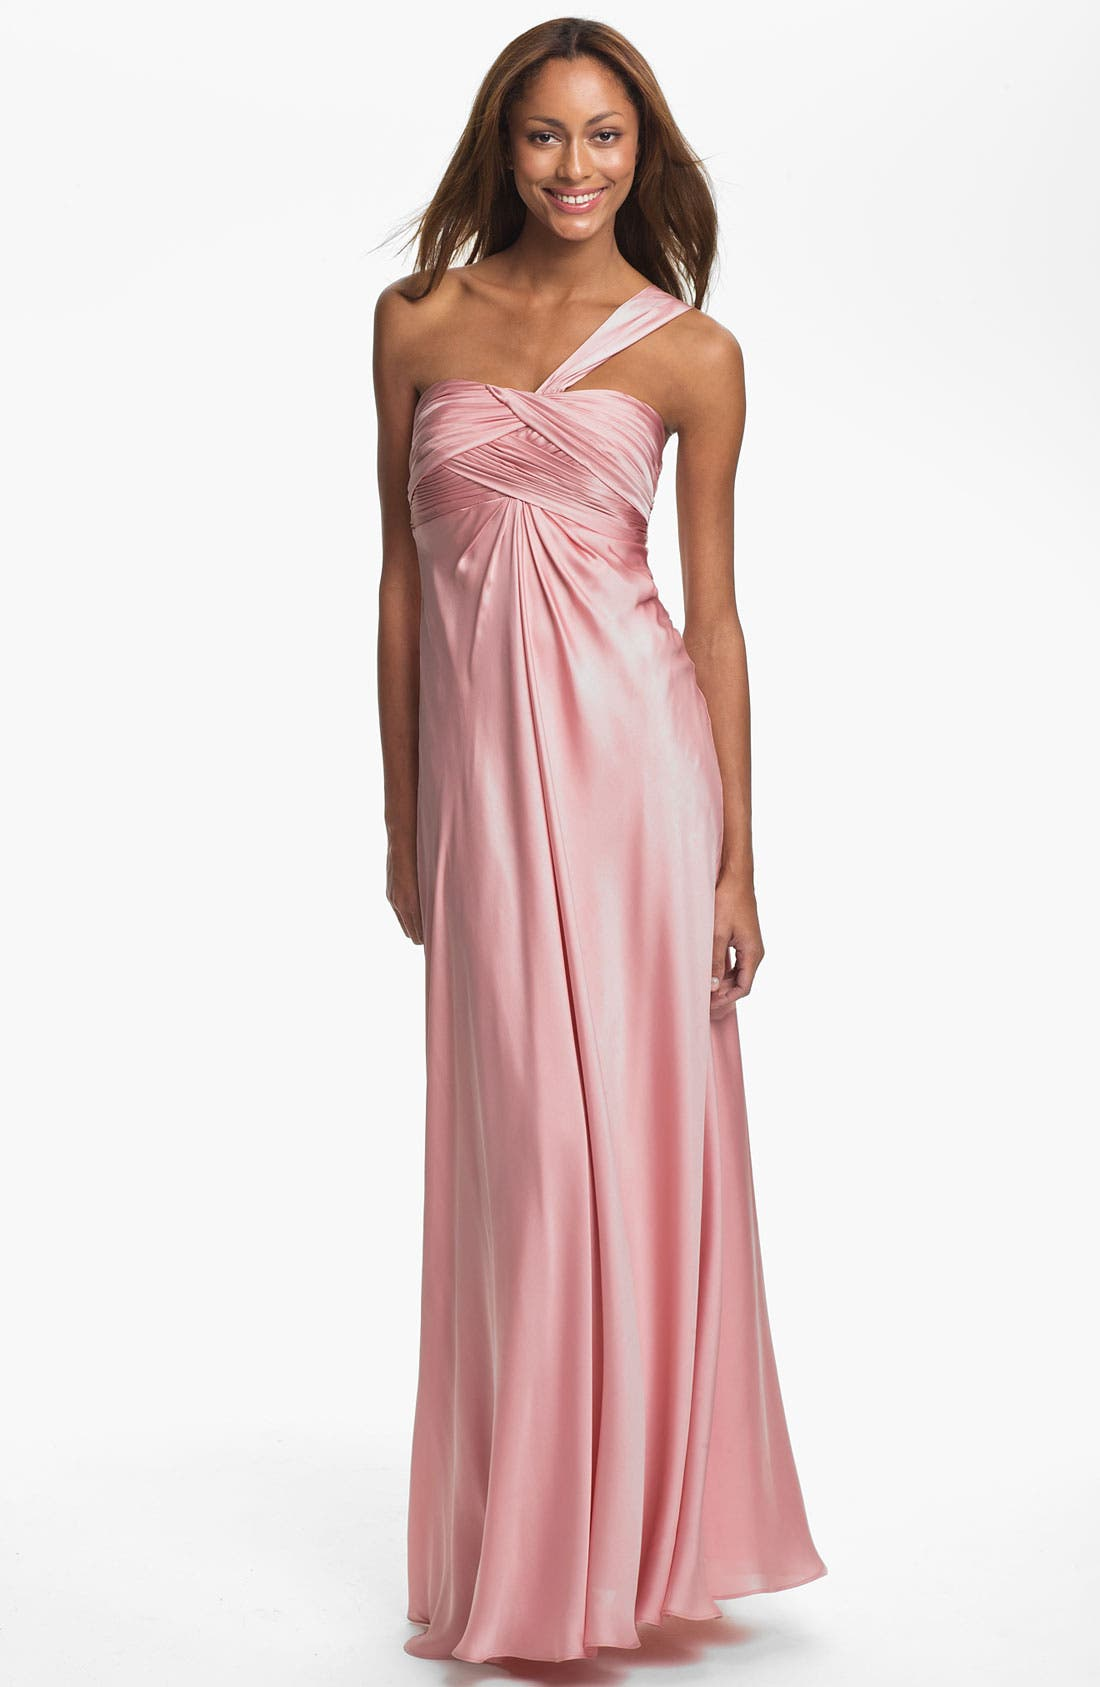 Alternate Image 1 Selected - ML Monique Lhuillier Bridesmaids One Shoulder Gown (Nordstrom Exclusive)